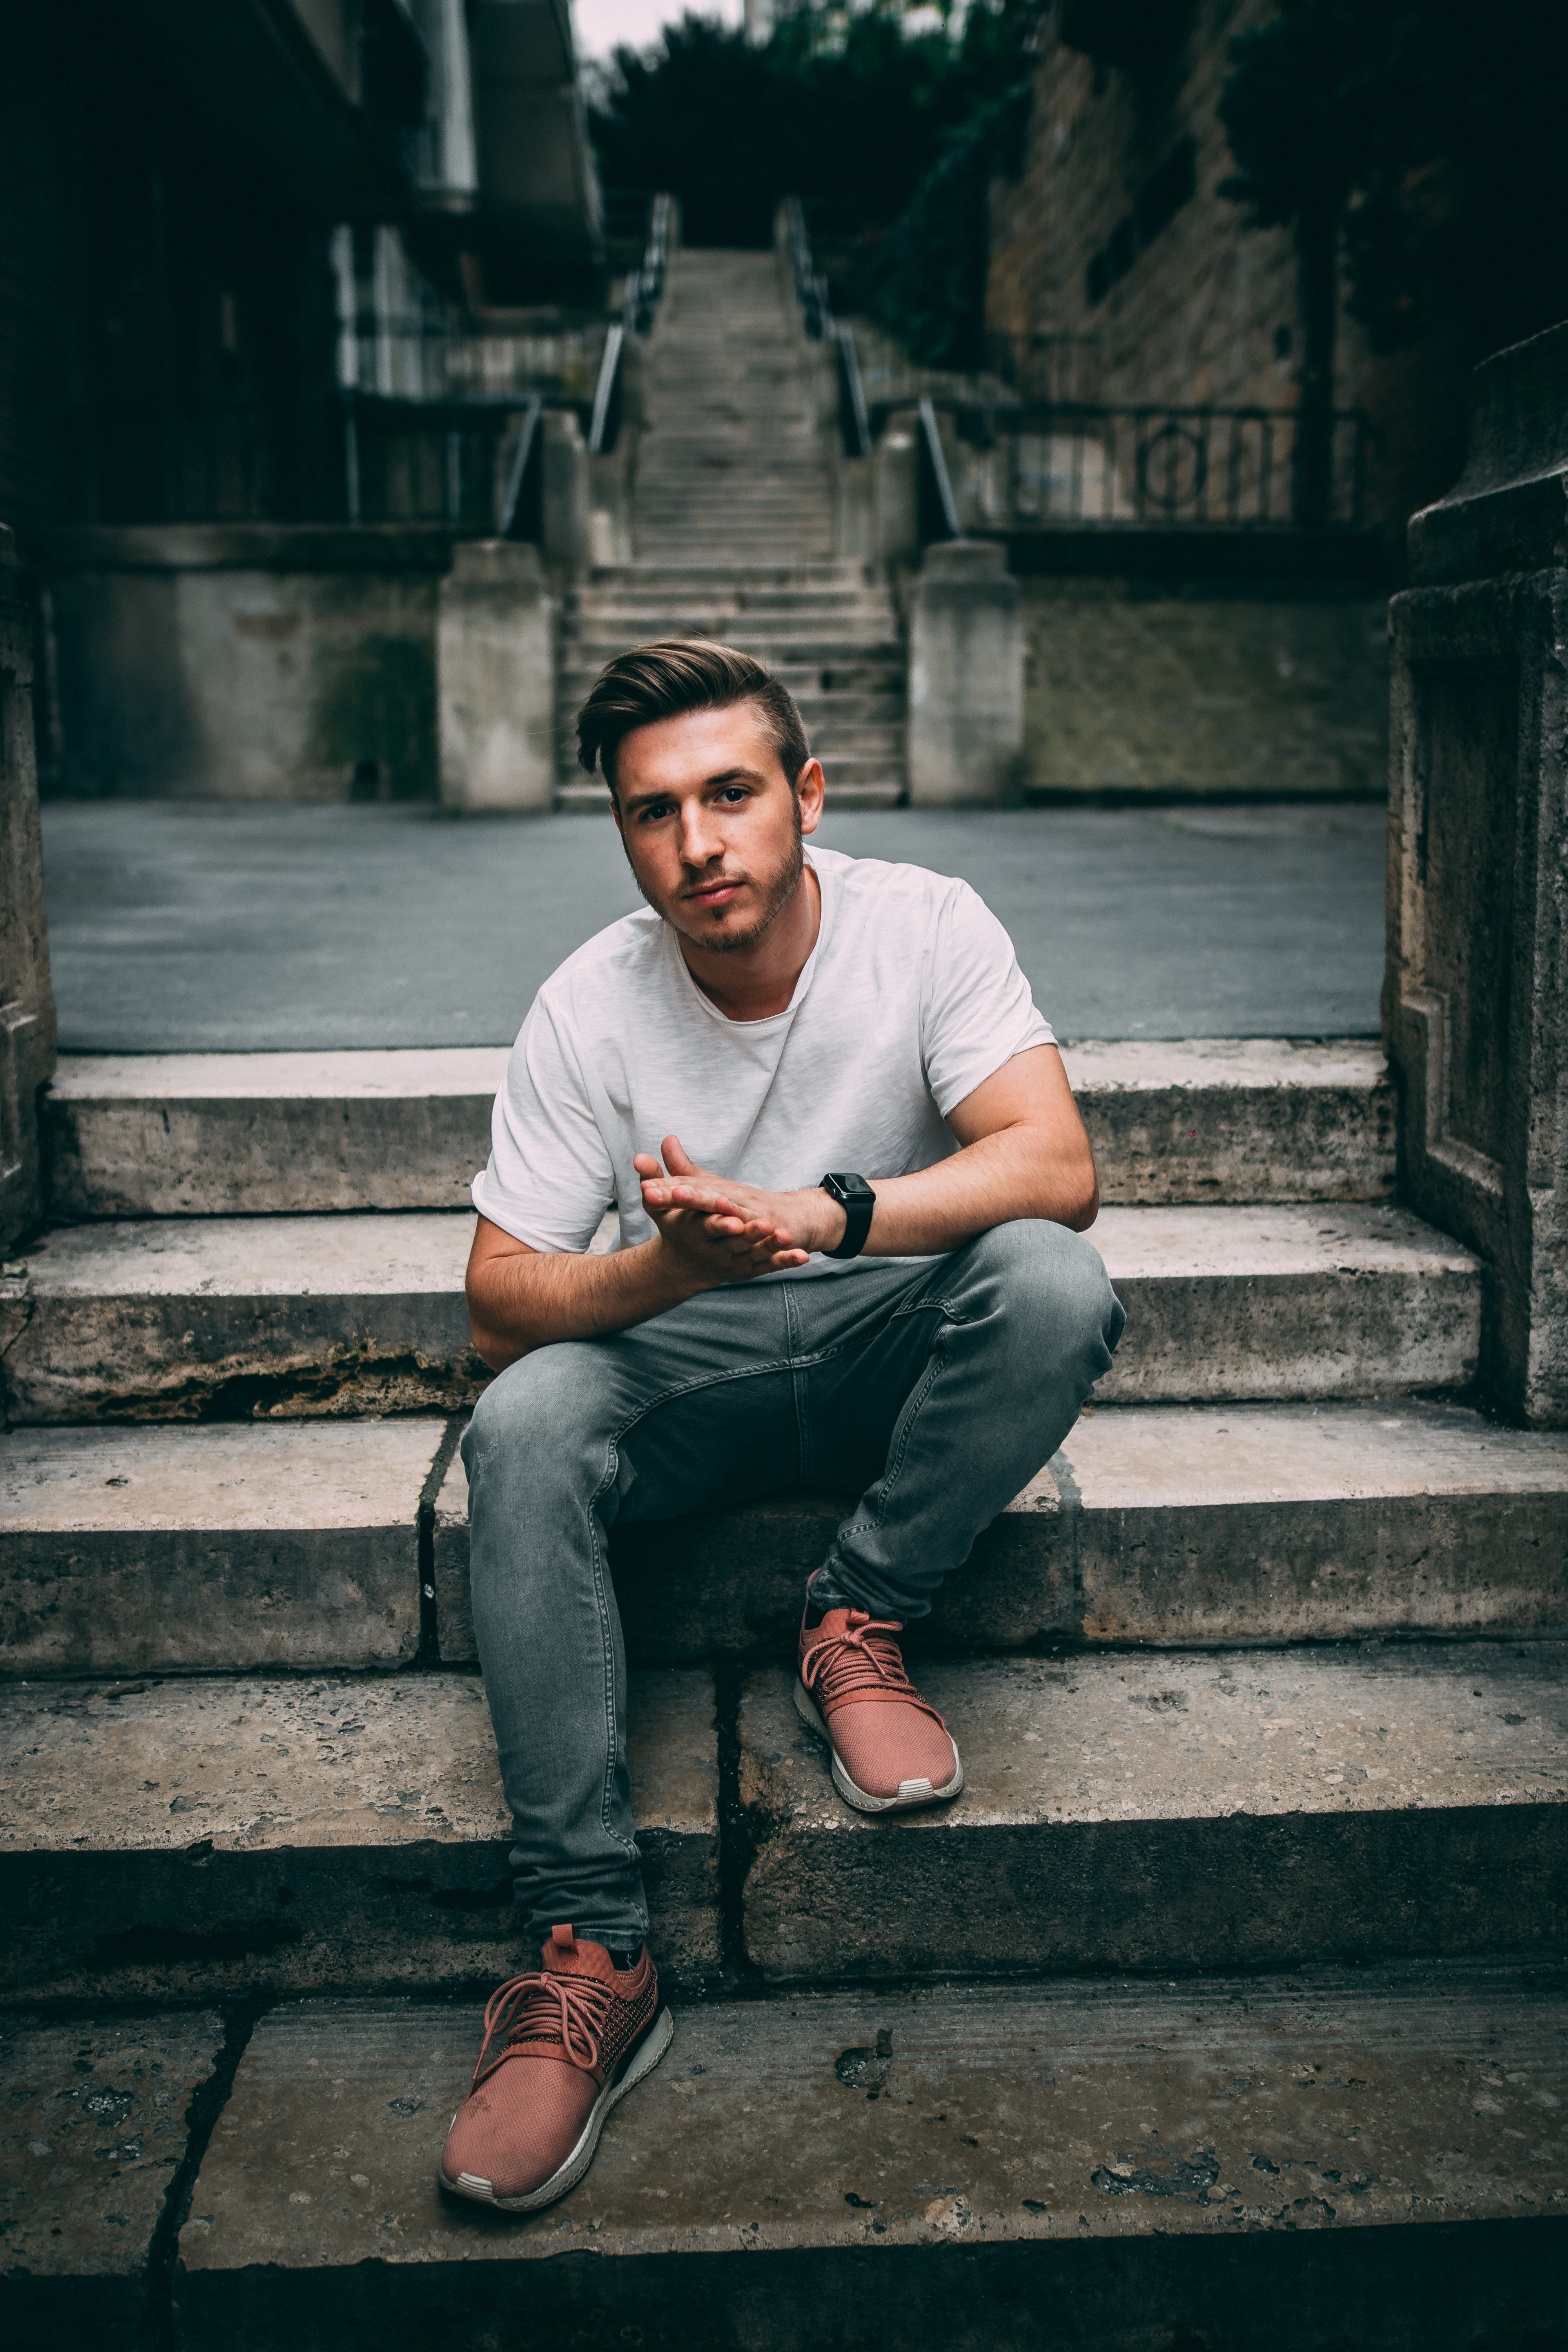 unknown celebrity sitting on concrete step outdoors